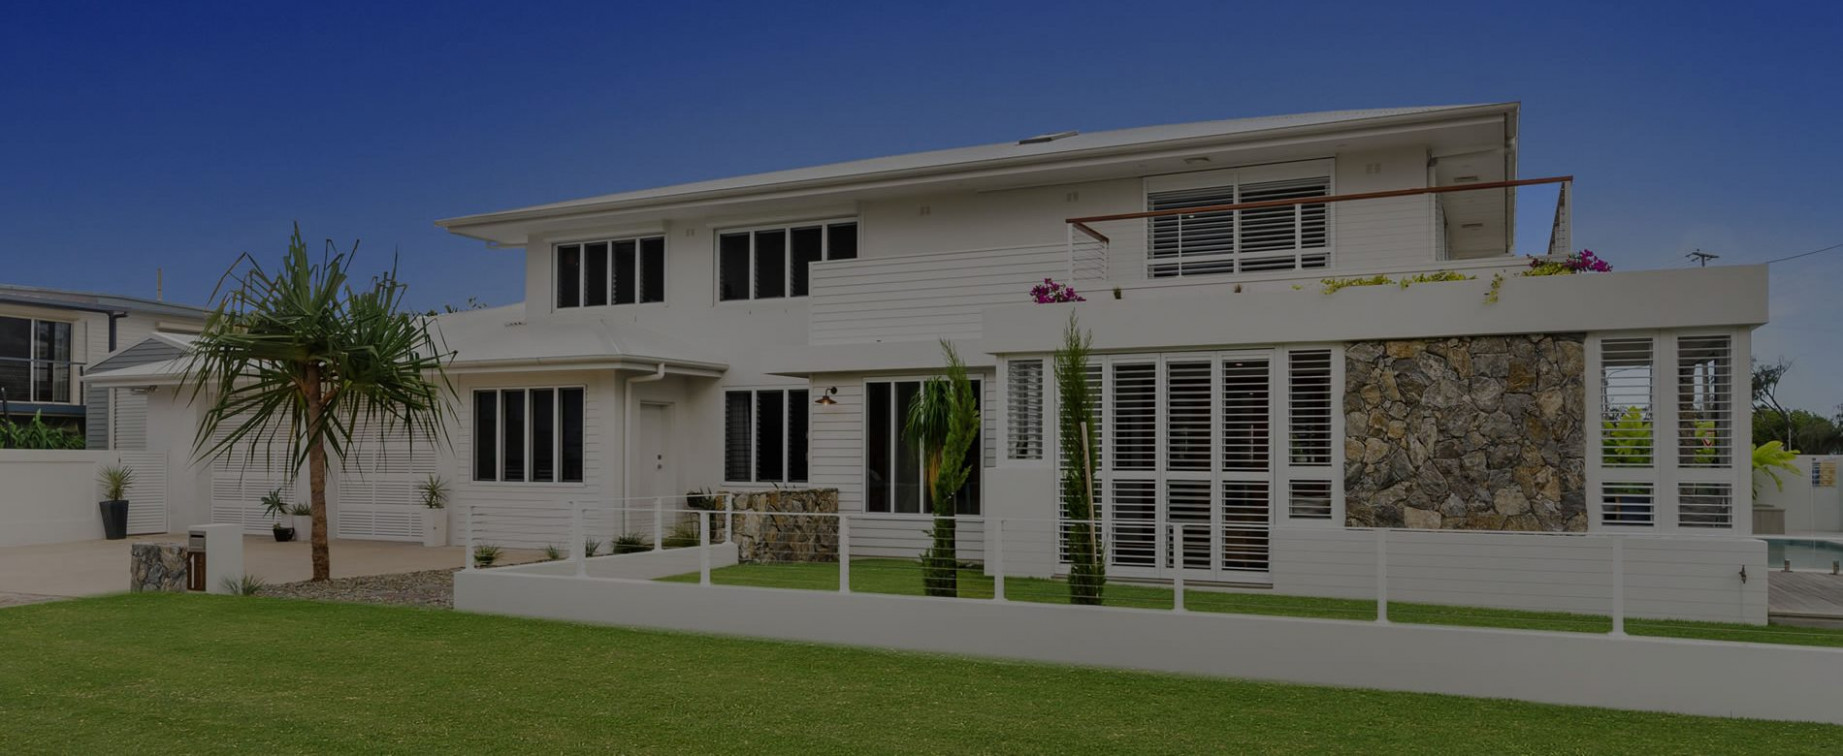 Sheds Townsville Garages Steel Buildings Townsville By Portable Carport Townsville.jpg